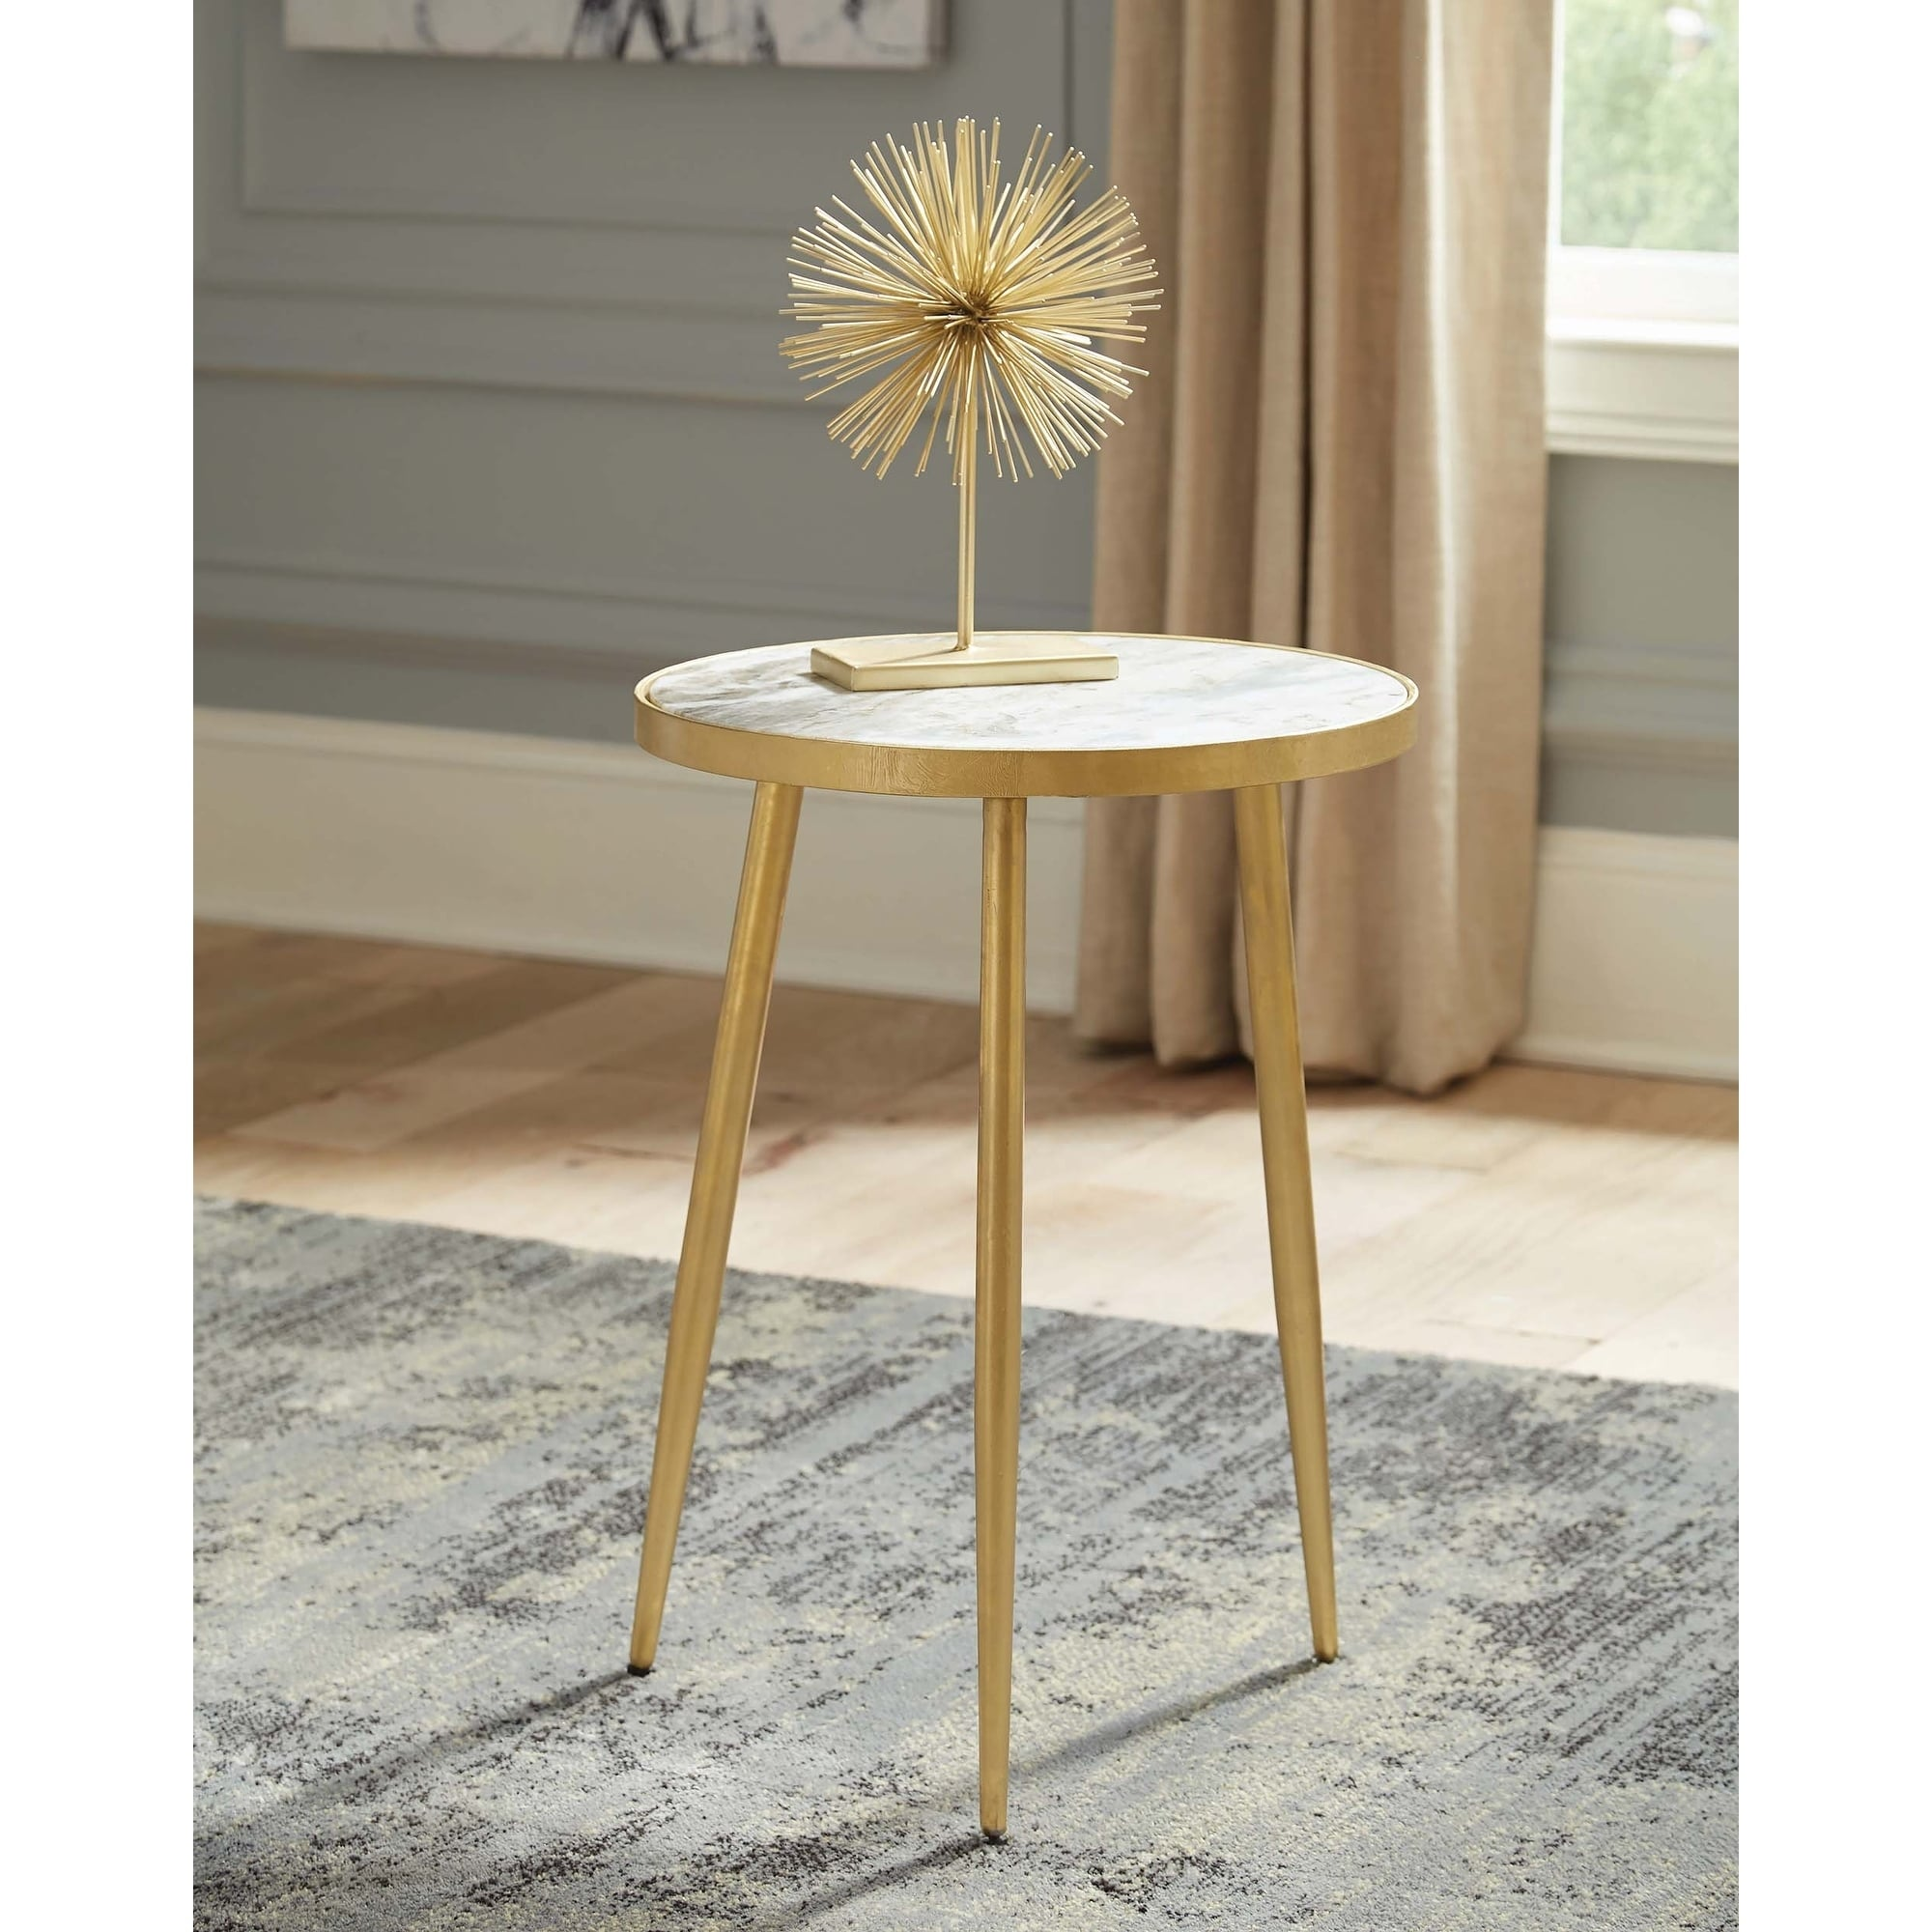 white and gold round accent table free shipping today night stands vinyl tablecloth timber top bunnings clear acrylic sofa marble small wooden kitchen modern lounge glass console